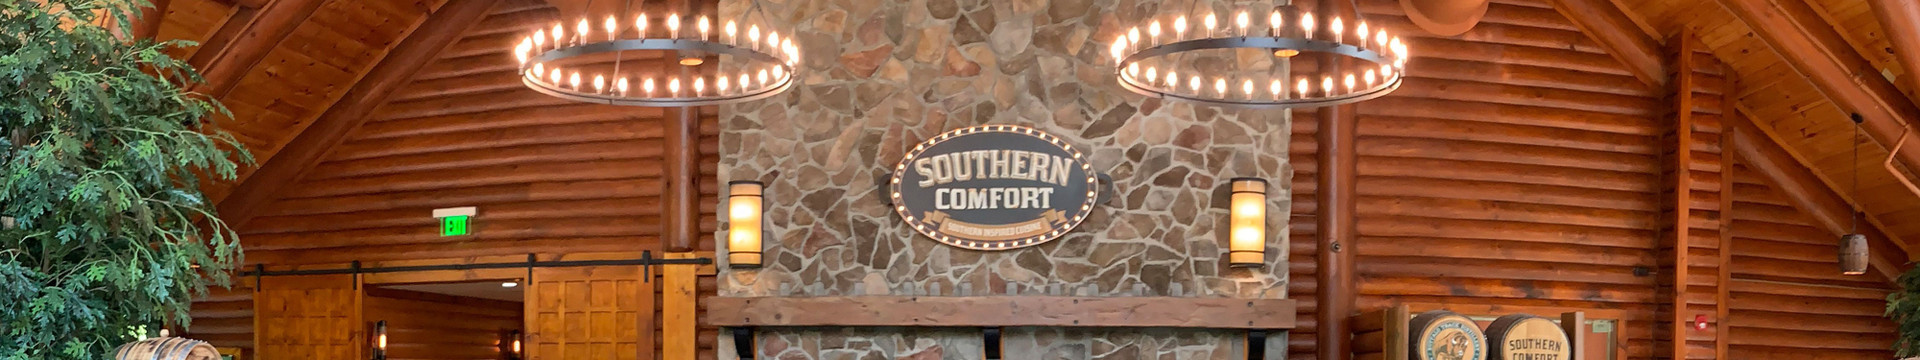 Southern Comfort - Westgate Smoky Mountain